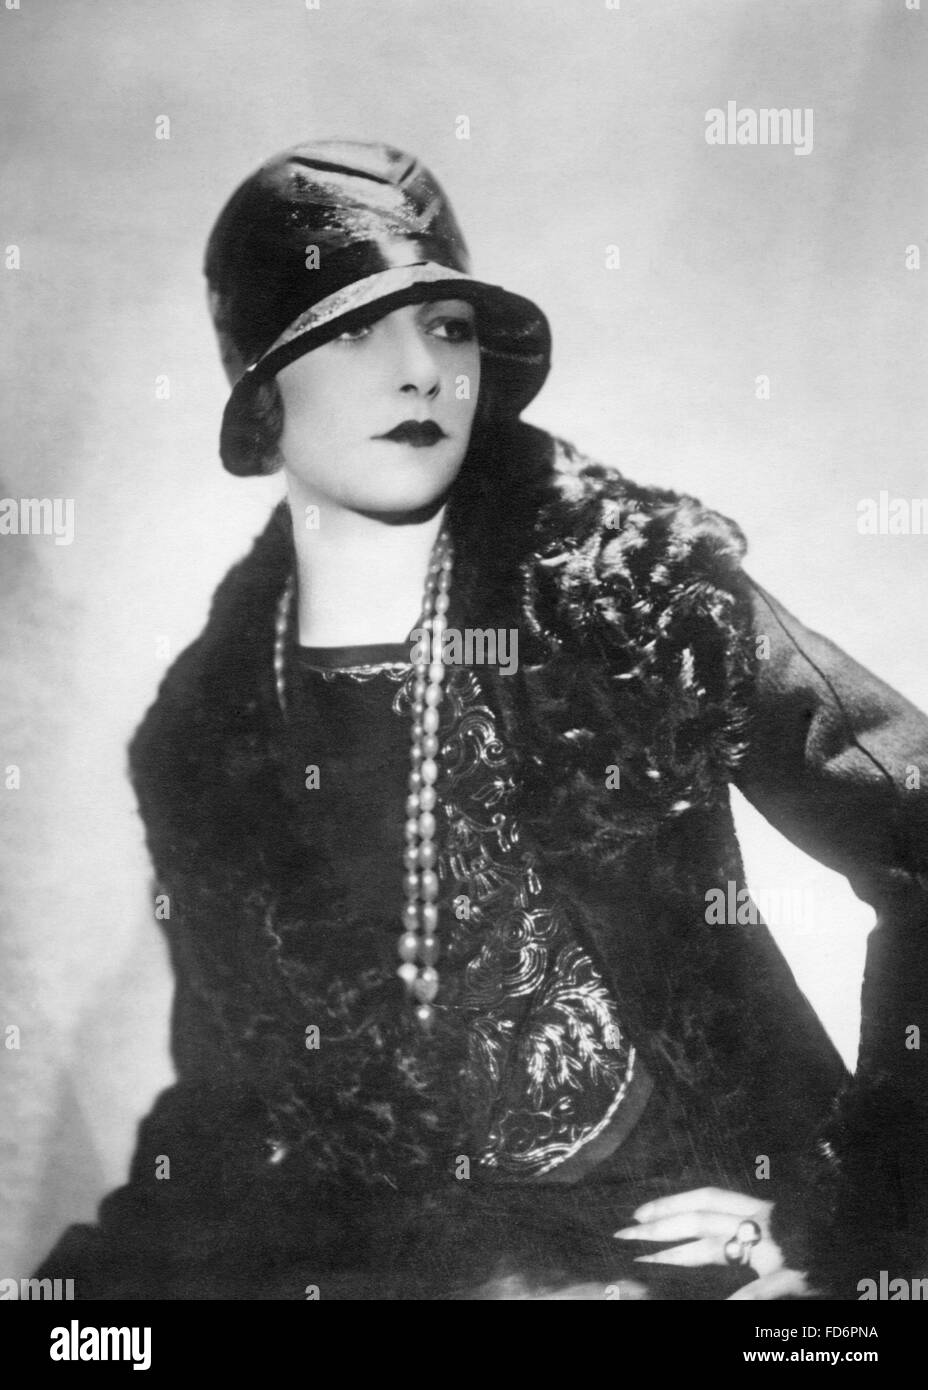 hat fashion for women 1930s stock photo royalty free